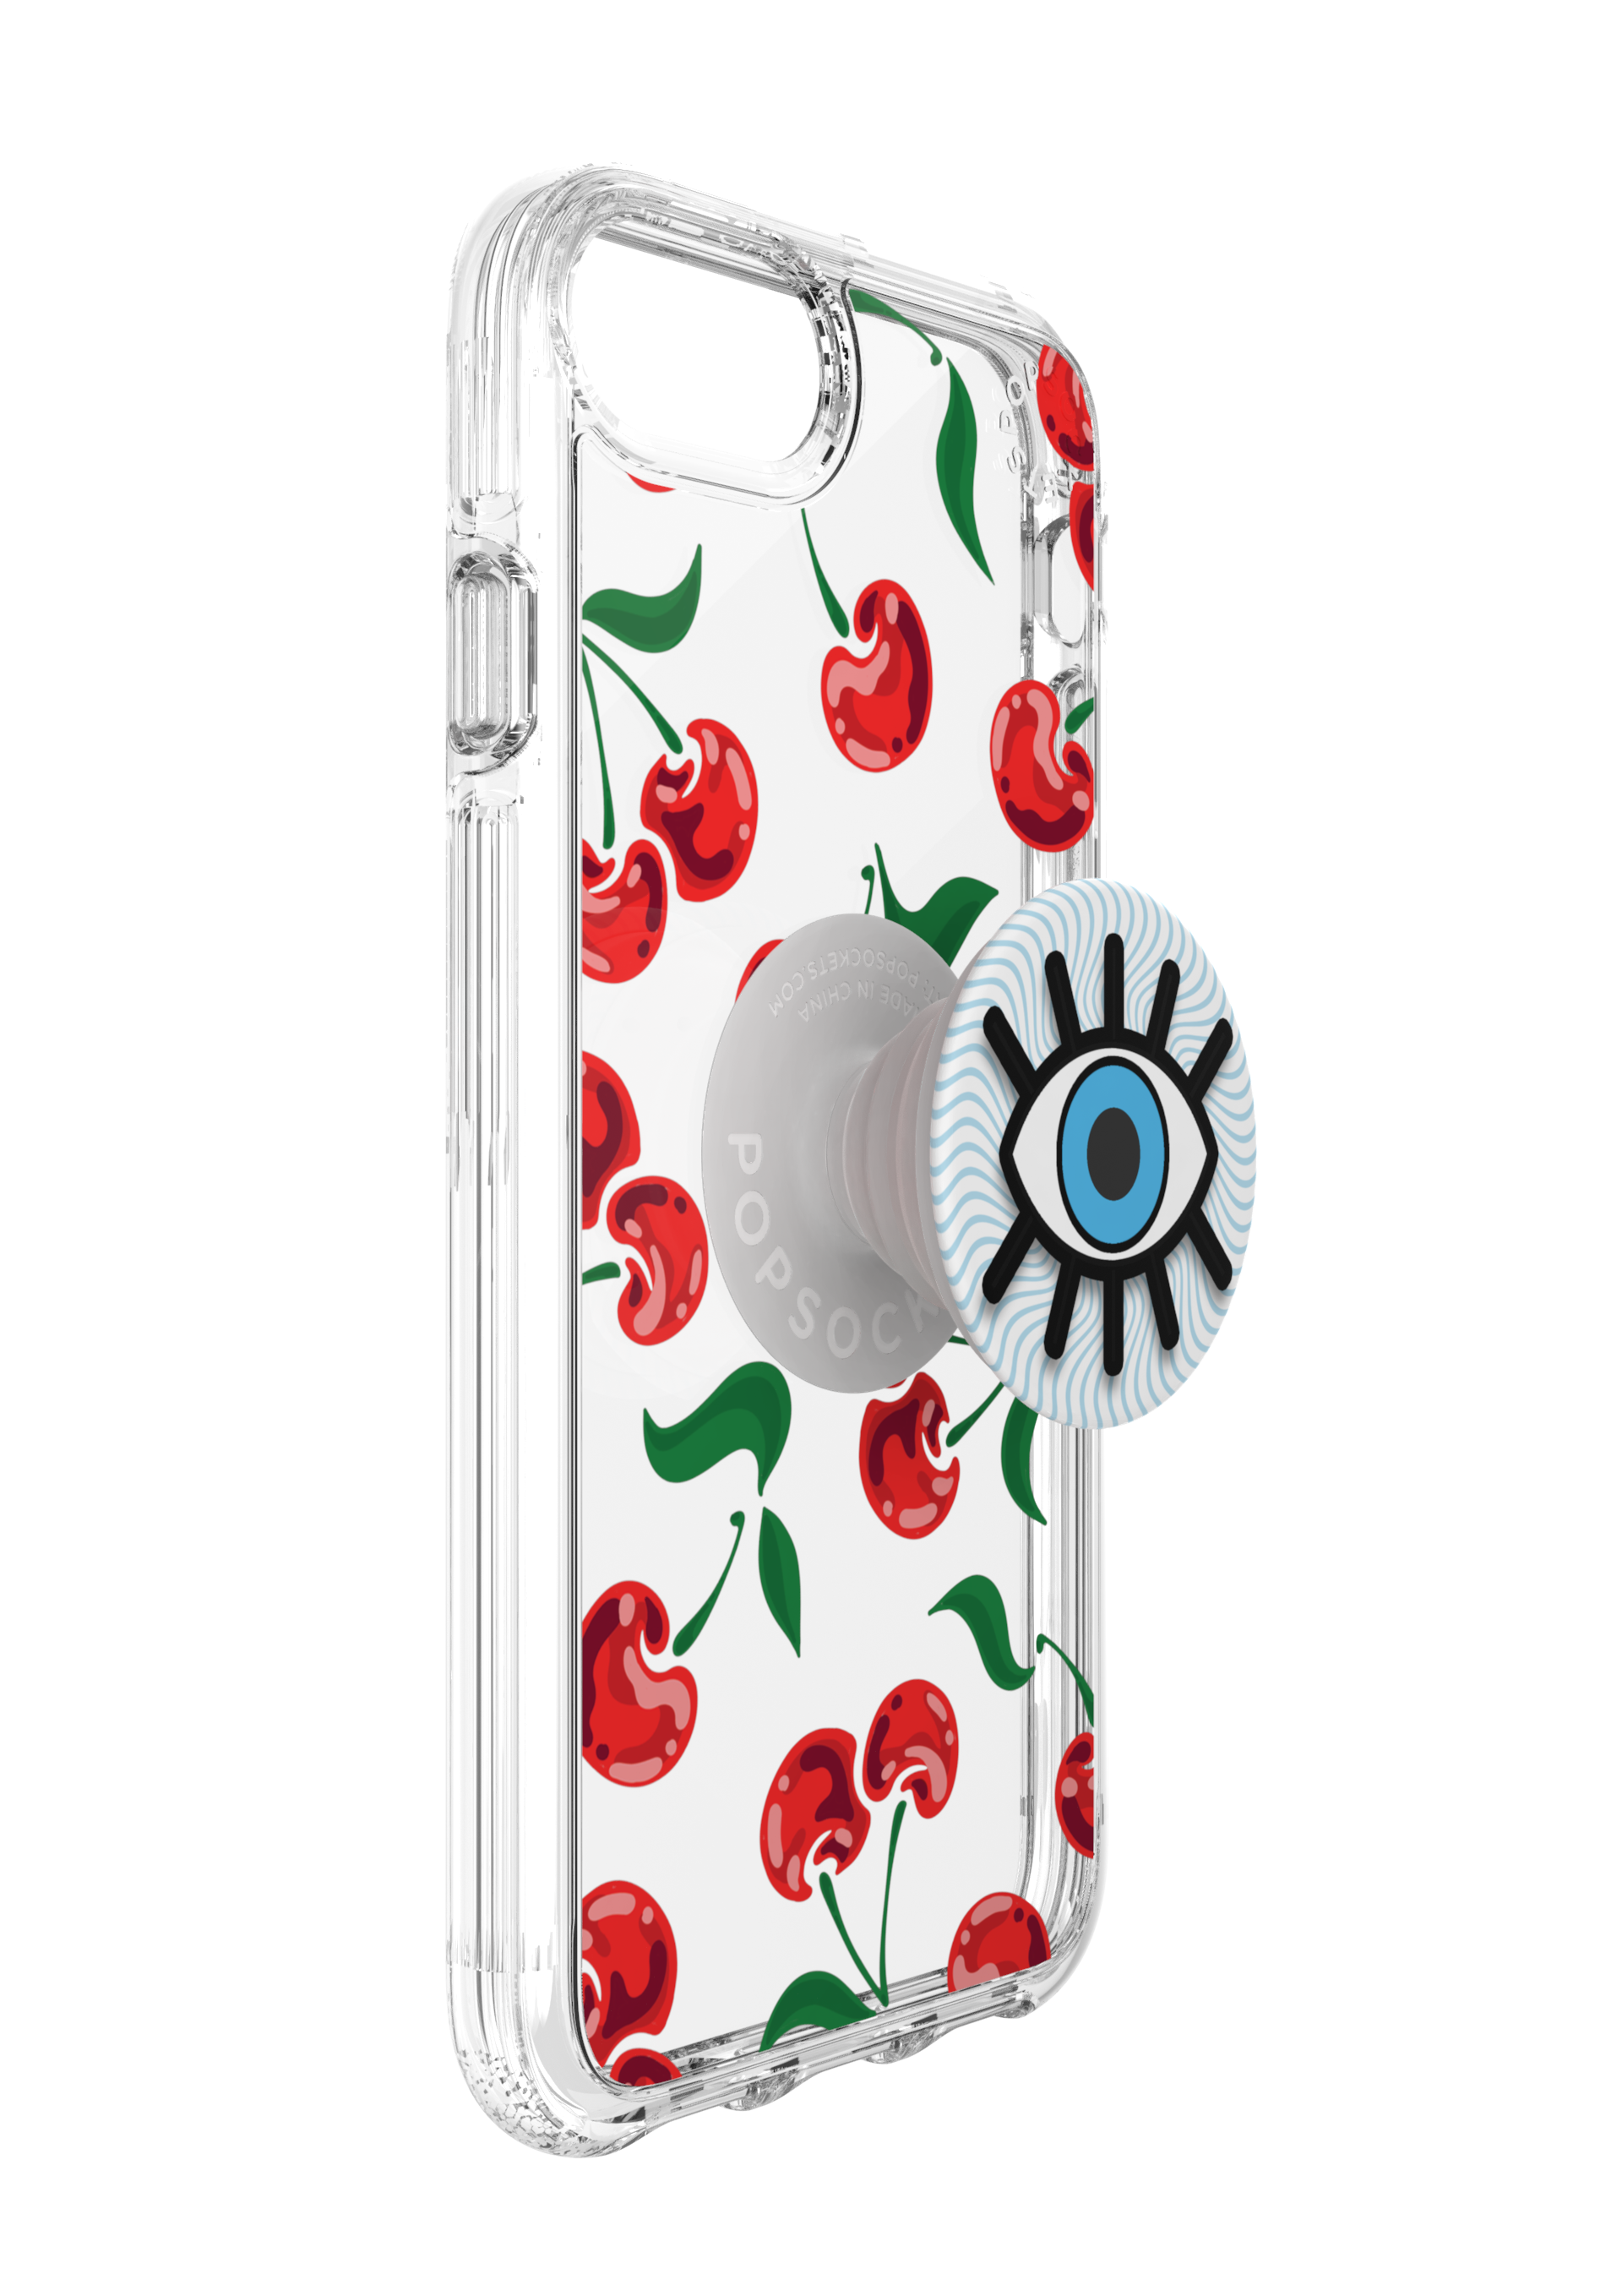 Slim with PopSocket 1.385.png